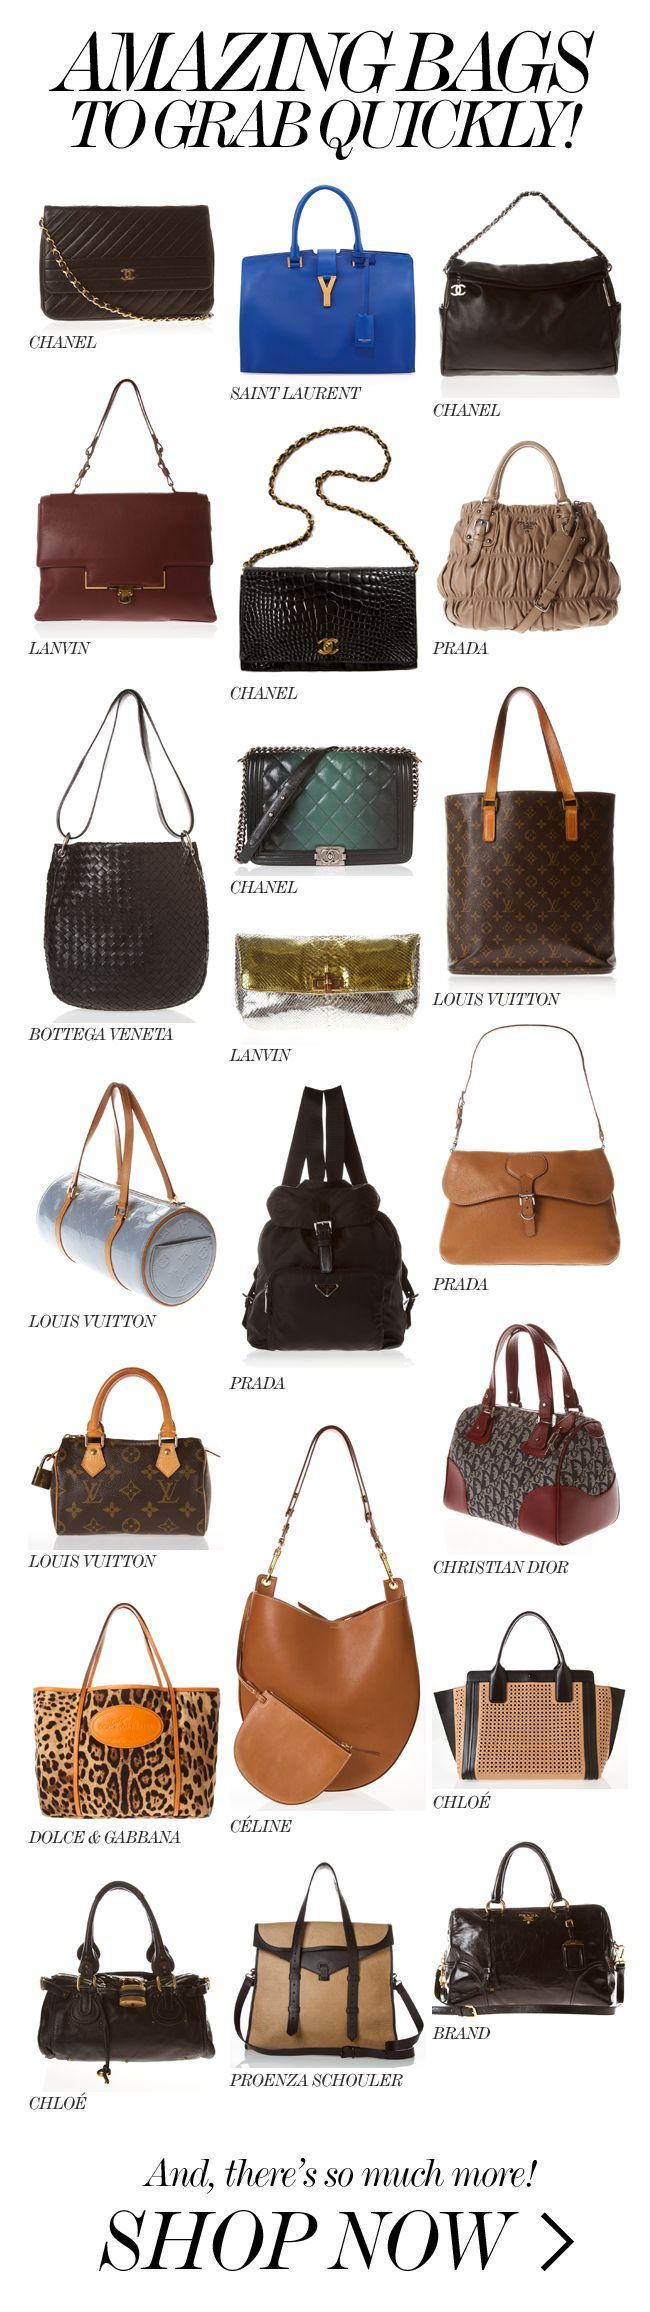 AMAZING DESIGNER BAGS // Chanel, Saint Laurent, Céline, Louis Vuitton more.: